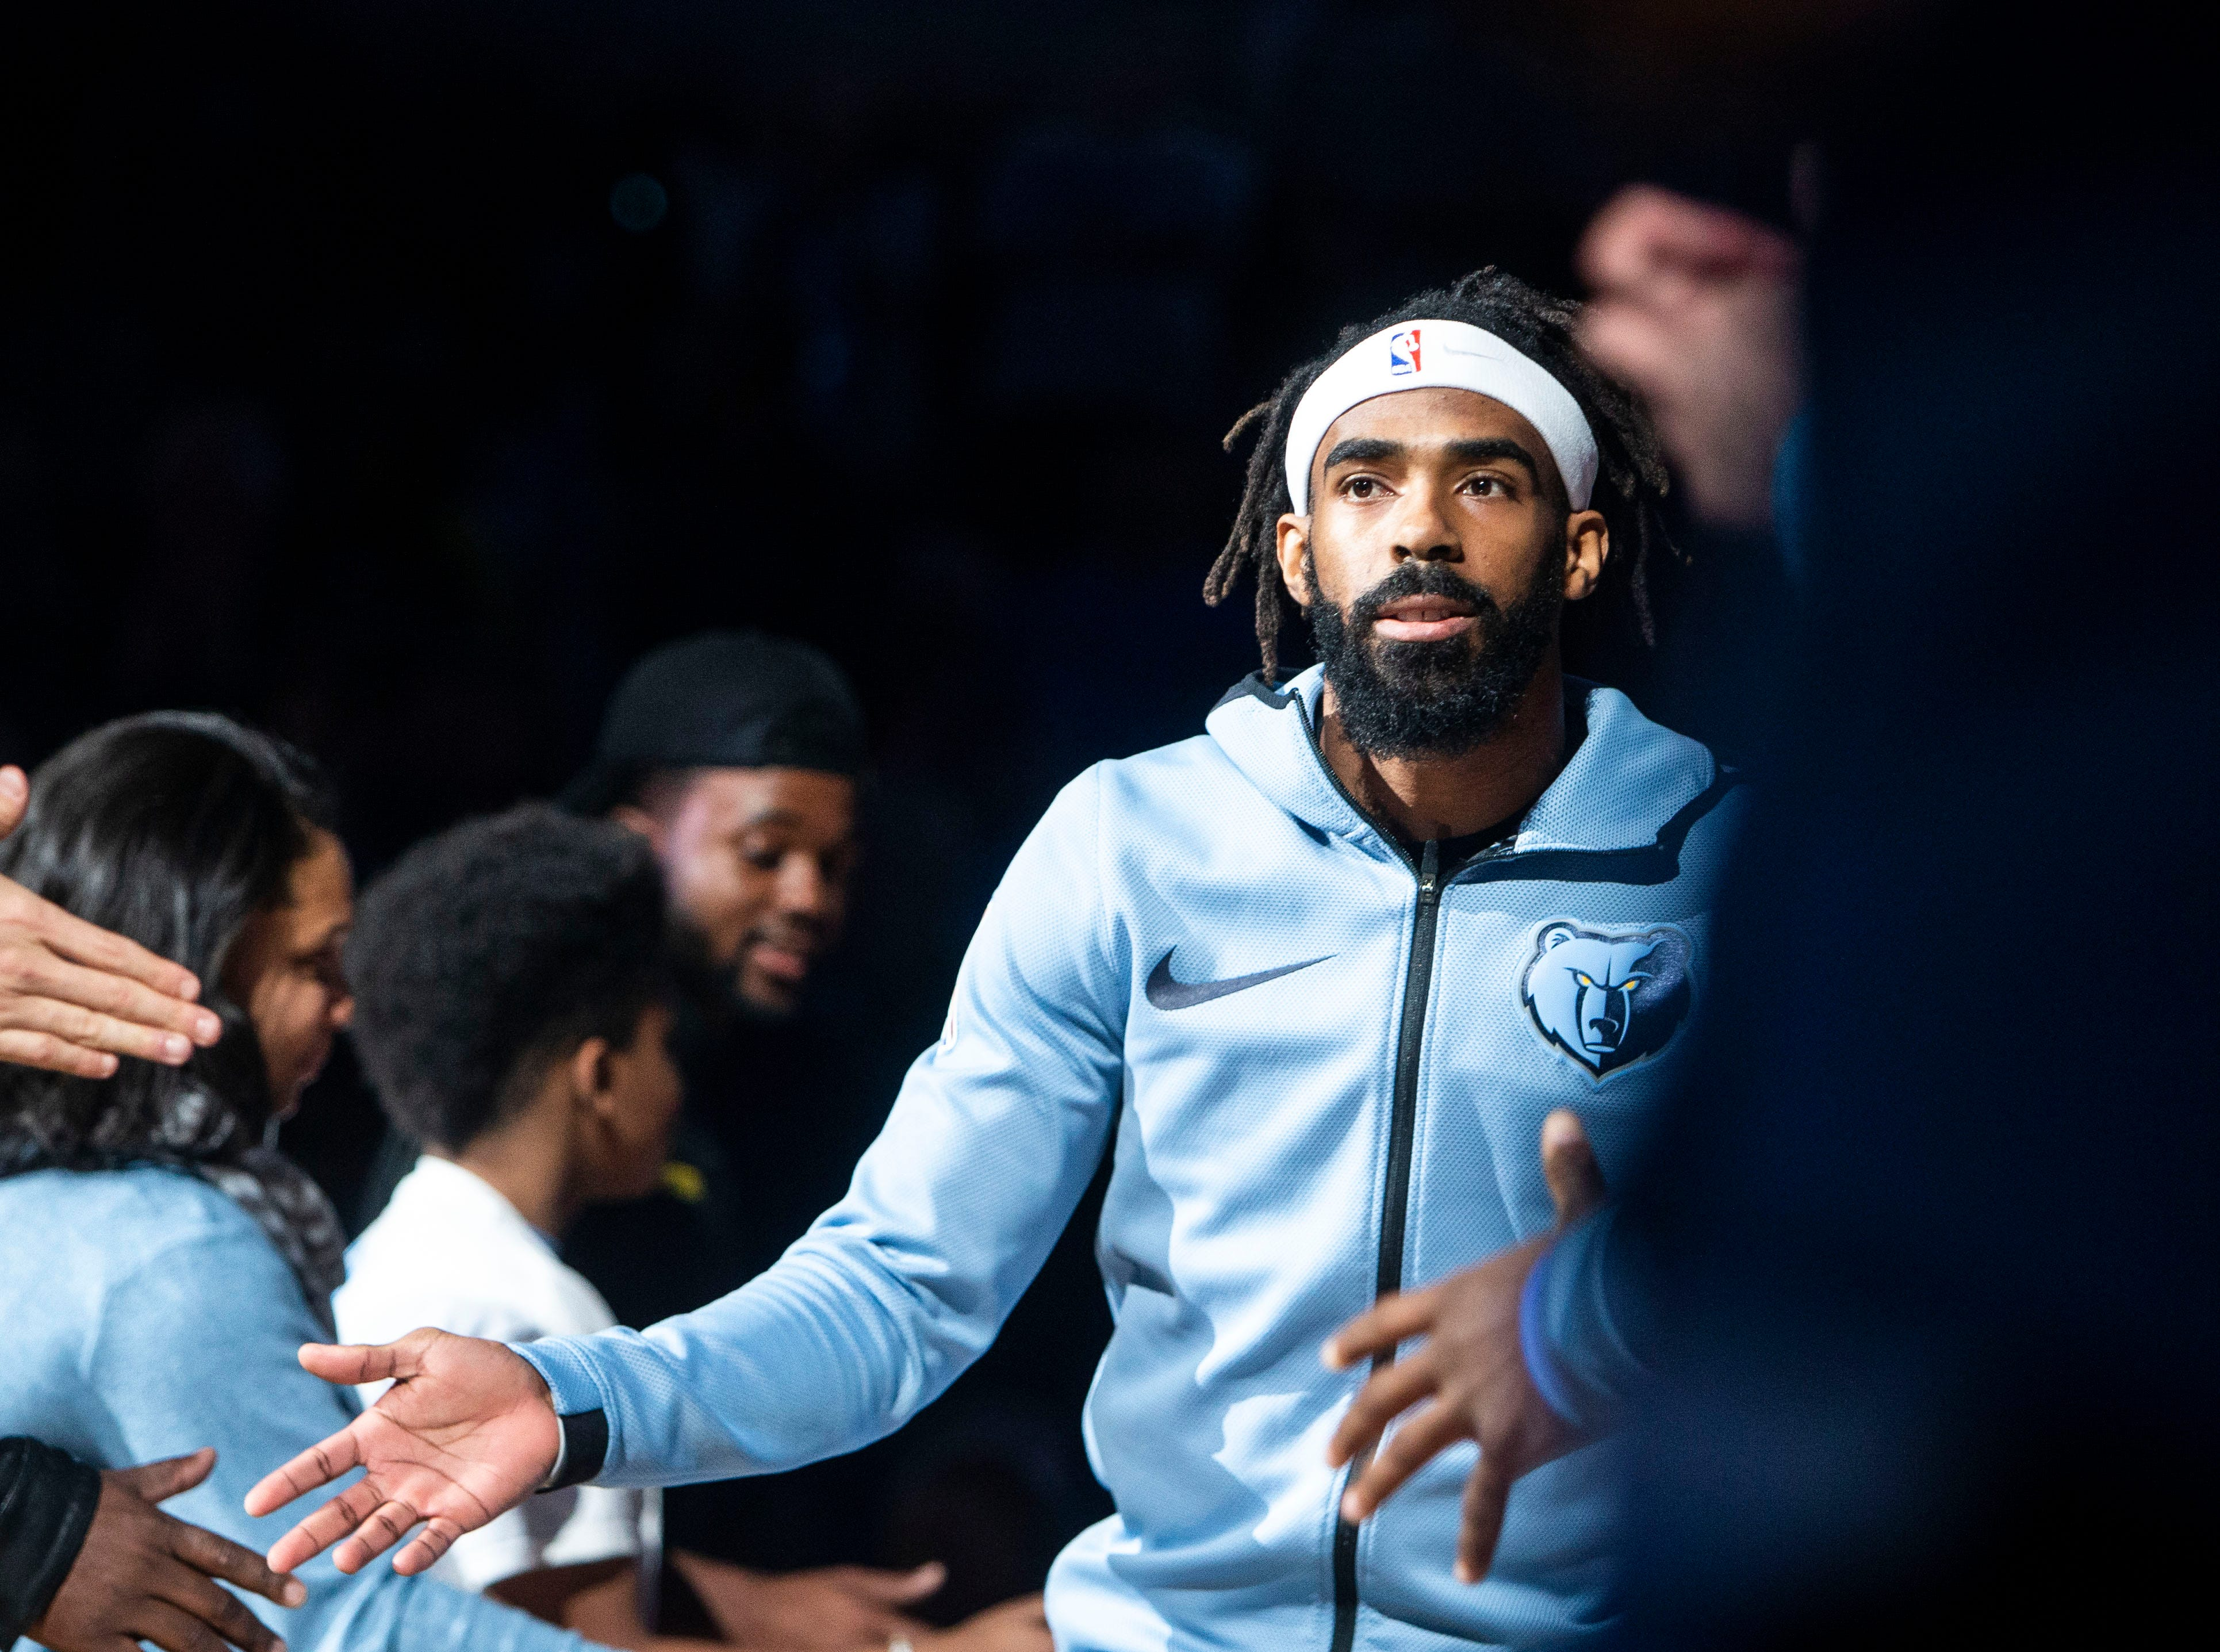 Memphis Grizzles guard Mike Conley (11) runs out on the court before a NBA basketball game between the Memphis Grizzlies and the  Los Angeles Clippers in the Fedex Forum, Wednesday, Dec. 5, 2018.